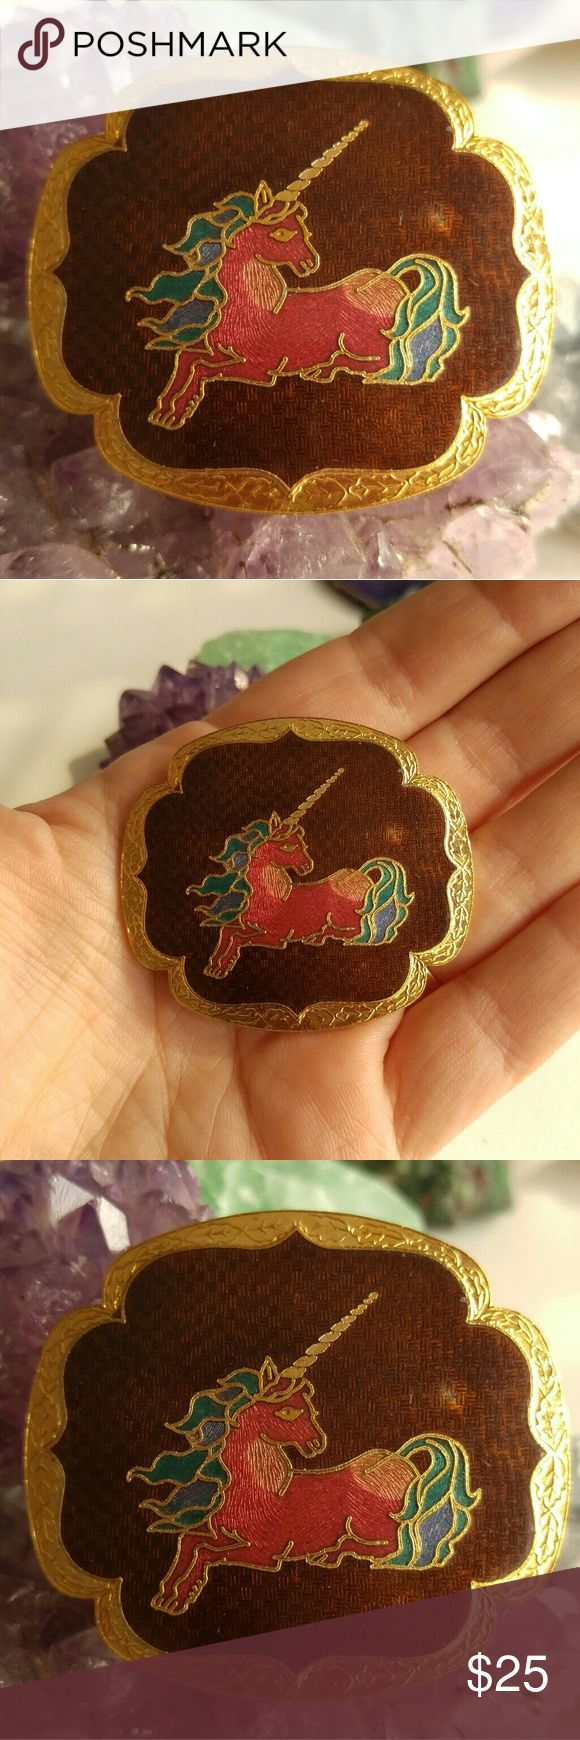 Vintage Unicorn Cloissone enamel bolo clip pendant This is a gorgeous vintage bolo tie pendant or belt clip! It is made of weighty gold tone metal with lovely Cloissone enamel work. An image of a unicorn is done in pink, teal green, and brown enamel. It is in very good shape with some wear to the enamel. From a smoke free home. Offers welcome:)  KeyF8188rose6n8m Vintage Jewelry Necklaces